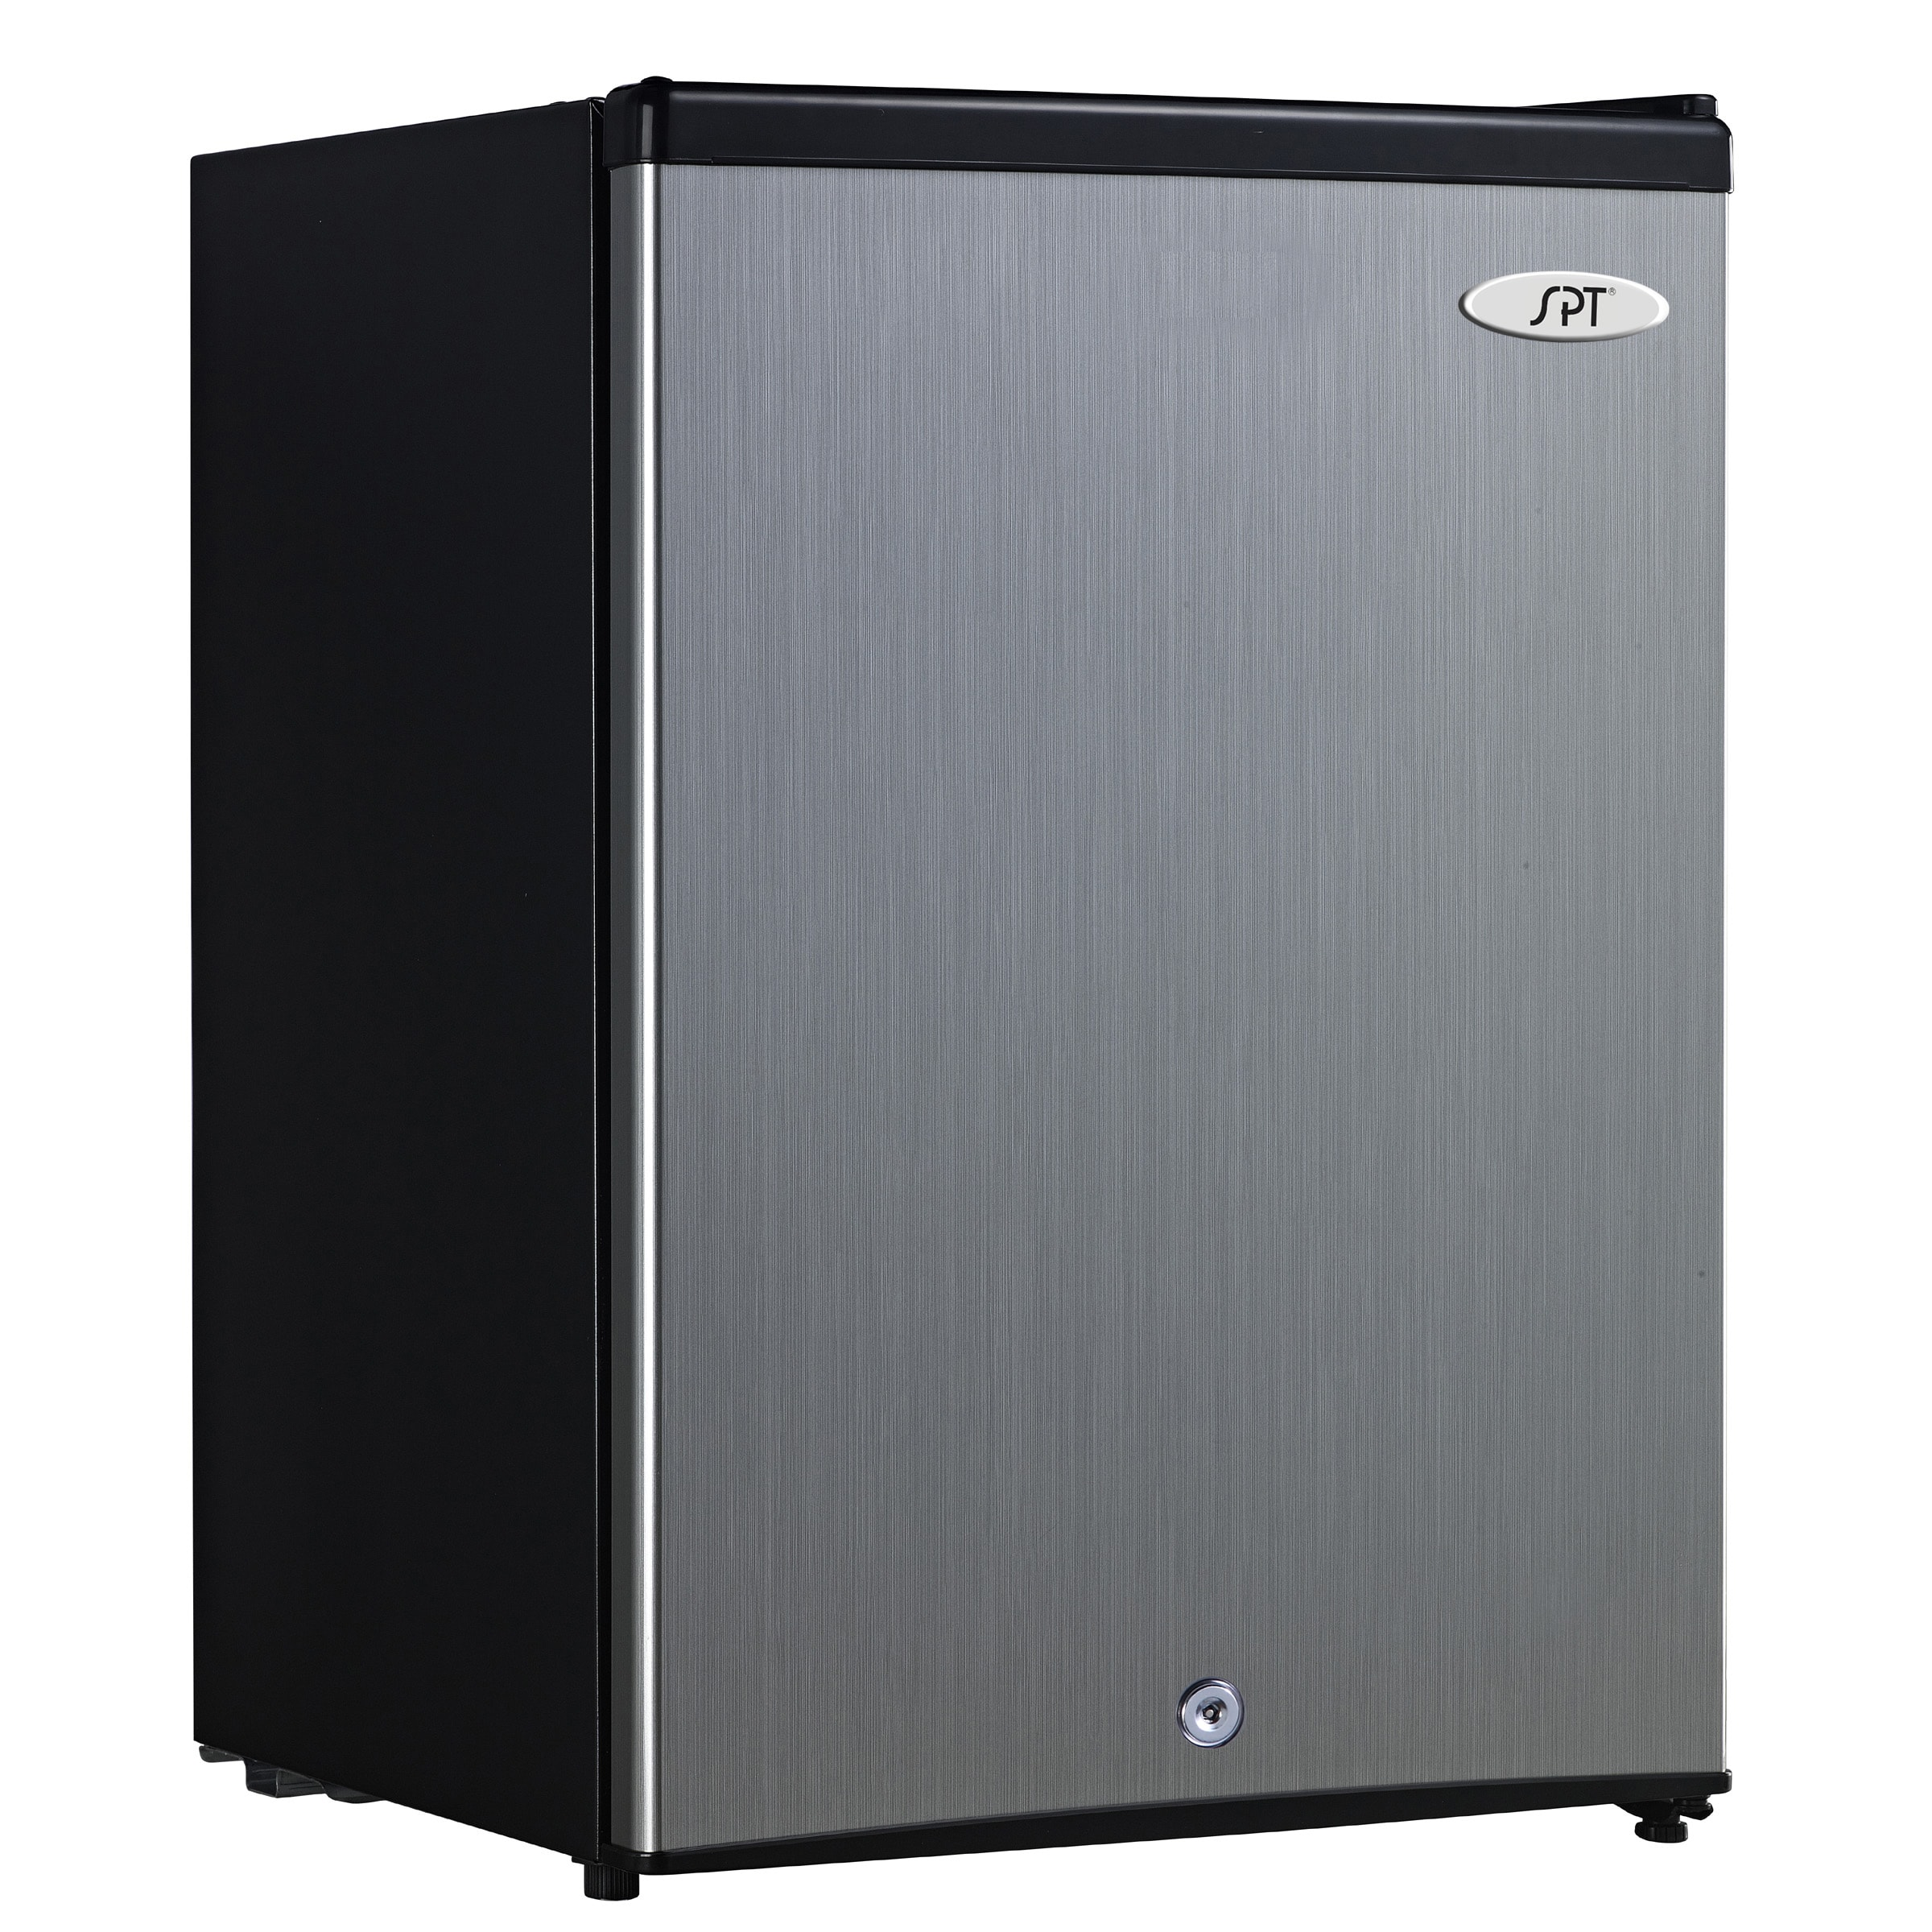 SPT 2.1 Cu. Ft. Stainless Steel Energy Star Upright Freezer - Free ...